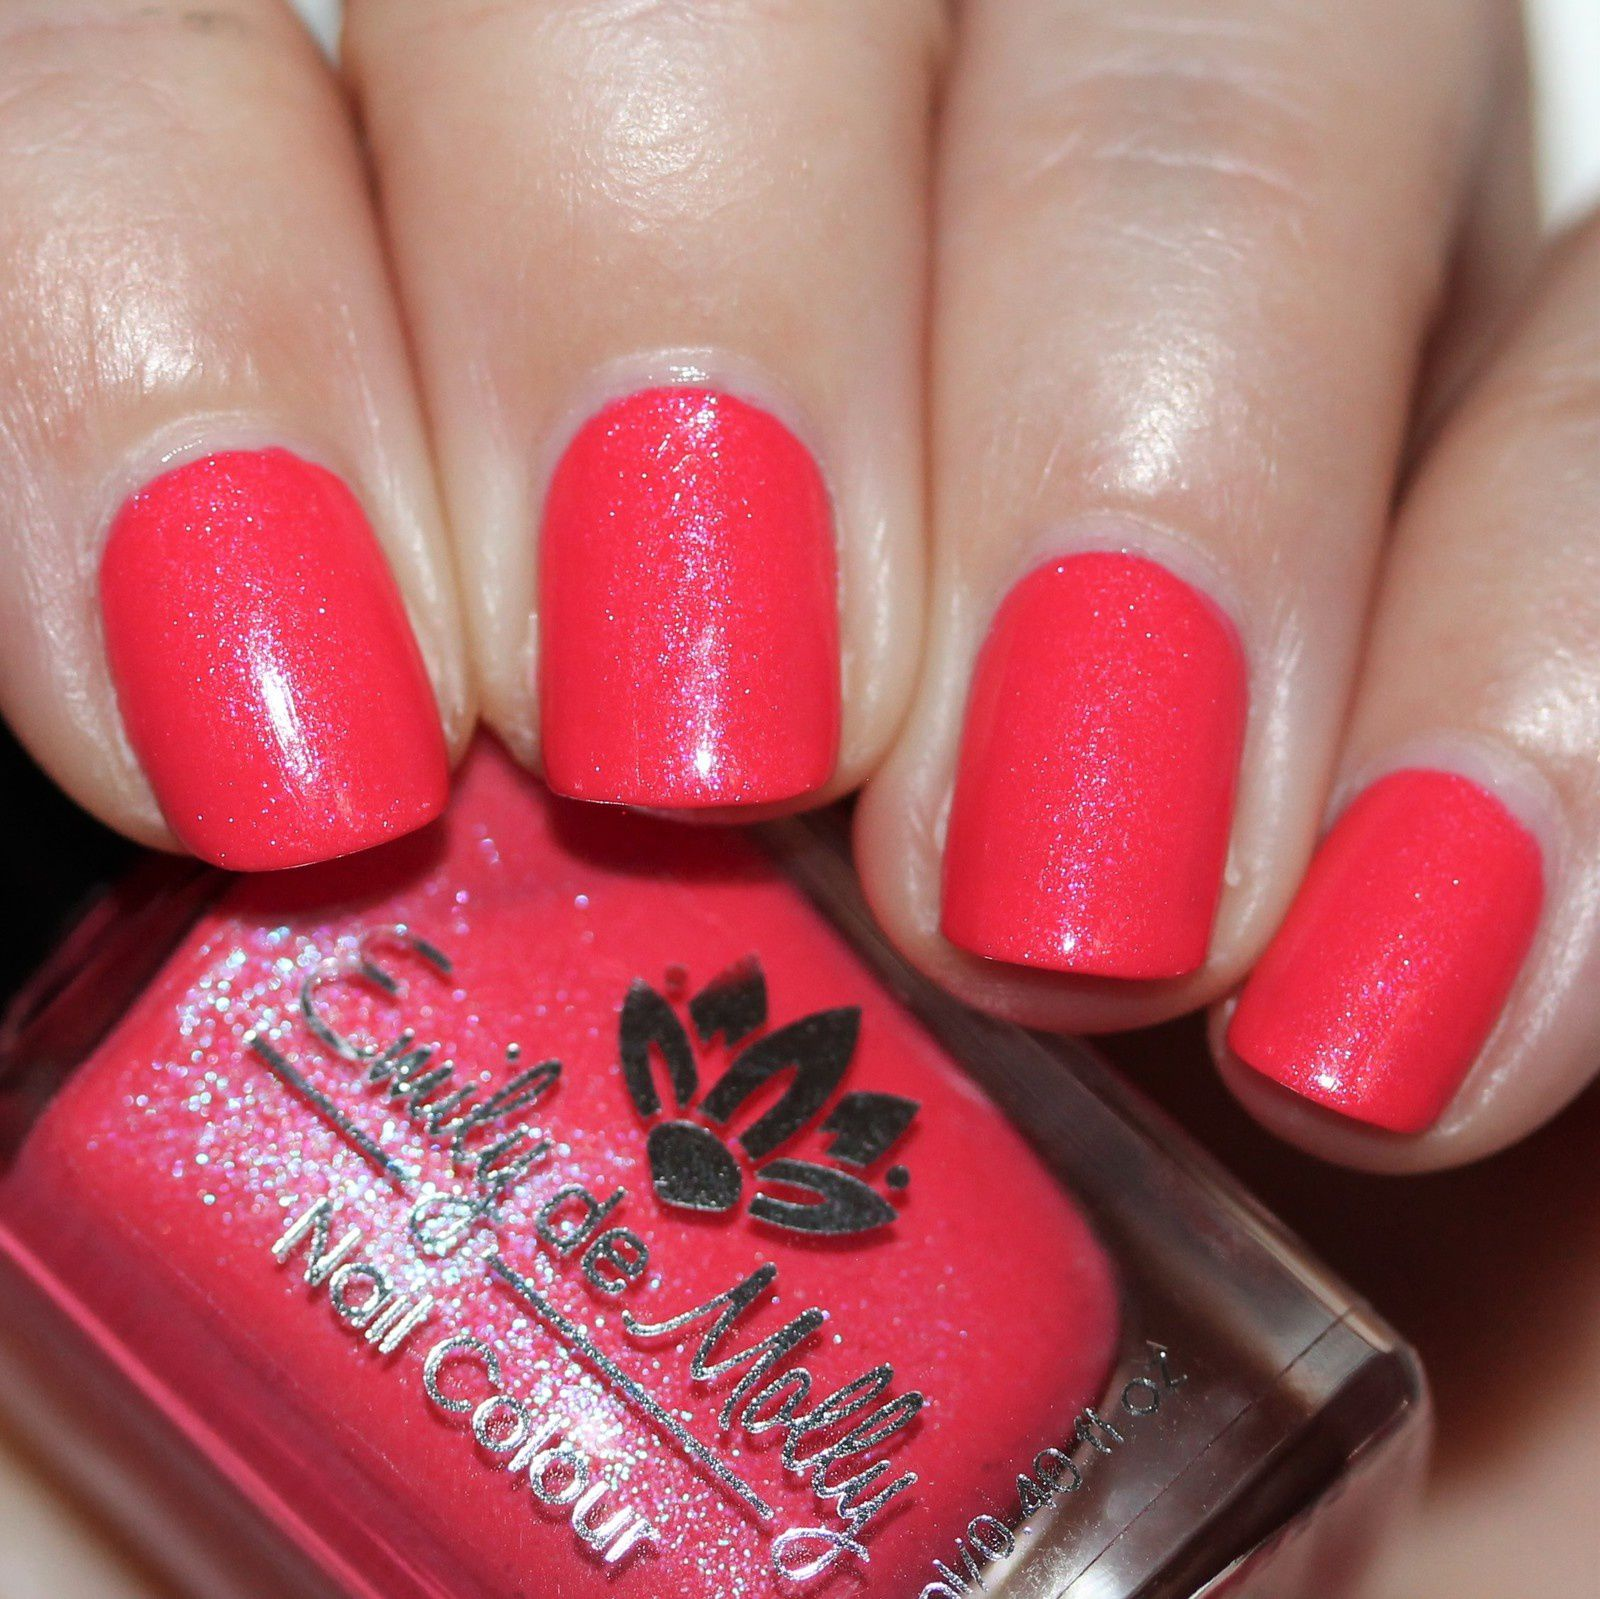 Essie Protein Base Coat / Emily de Molly Deep Sea Coral / Native War Paints Hurry, Hurry! Top Coat